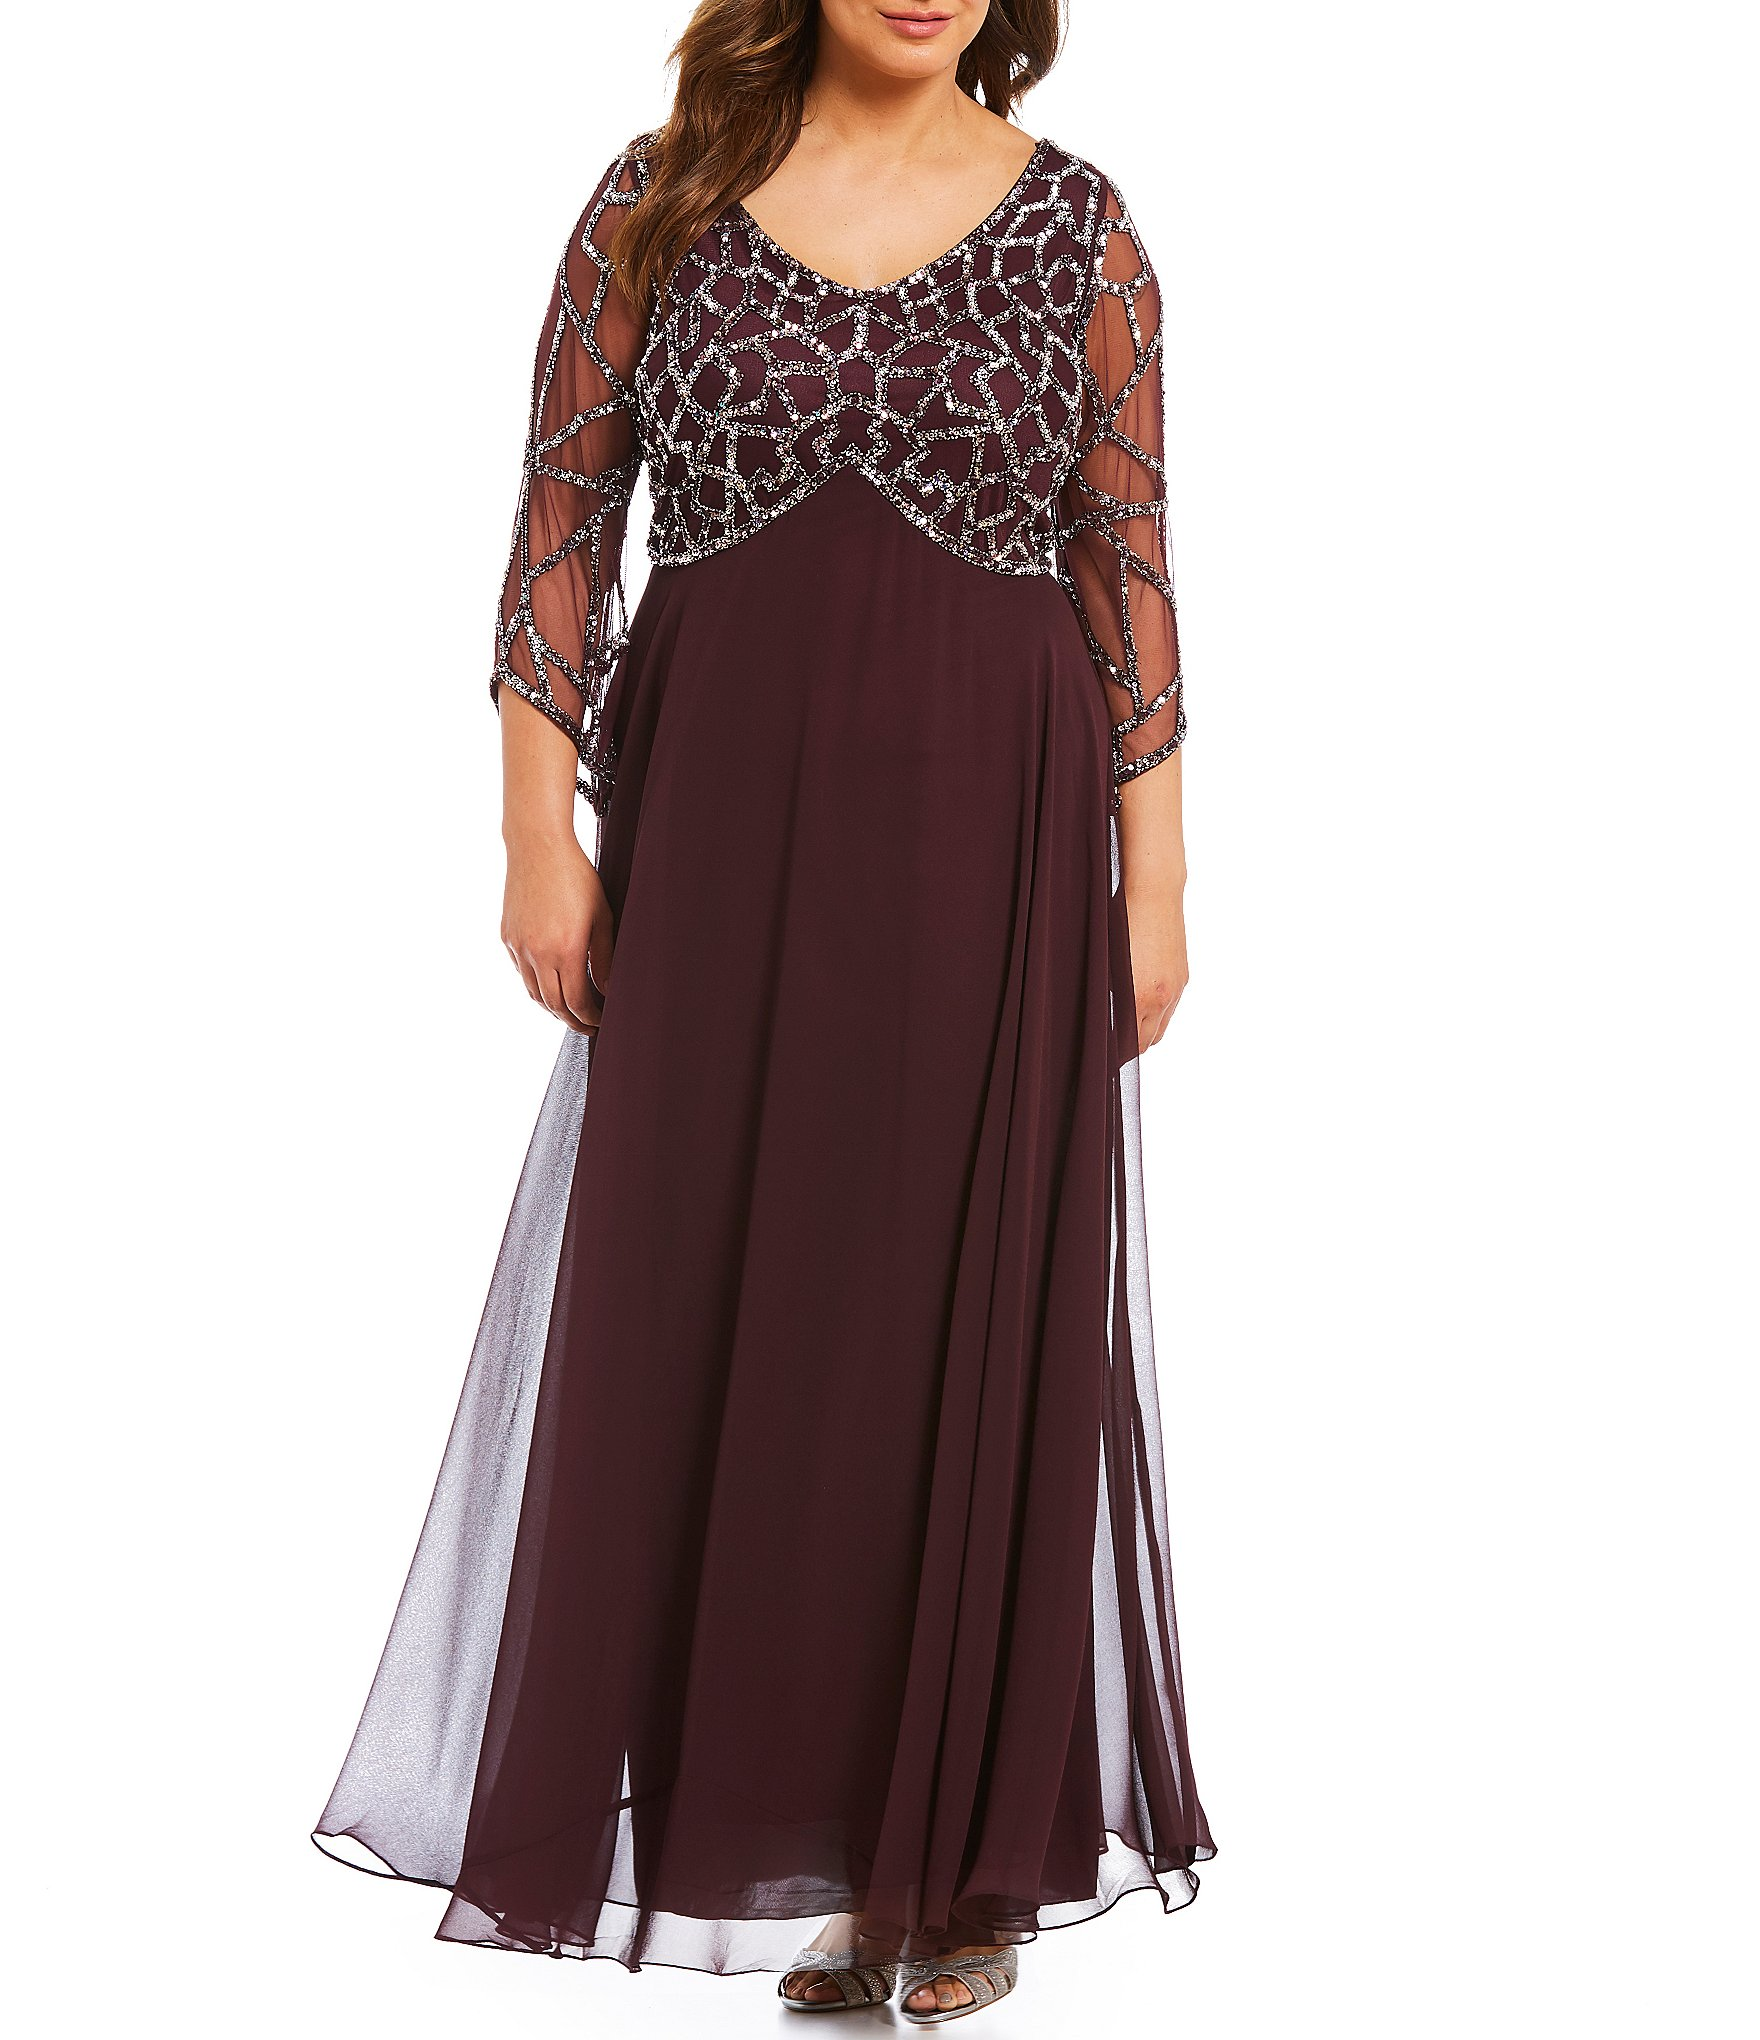 aea6ad6c16c Sale   Clearance Floral Plus-Size 3 4-Sleeve Formal Dresses   Gowns ...